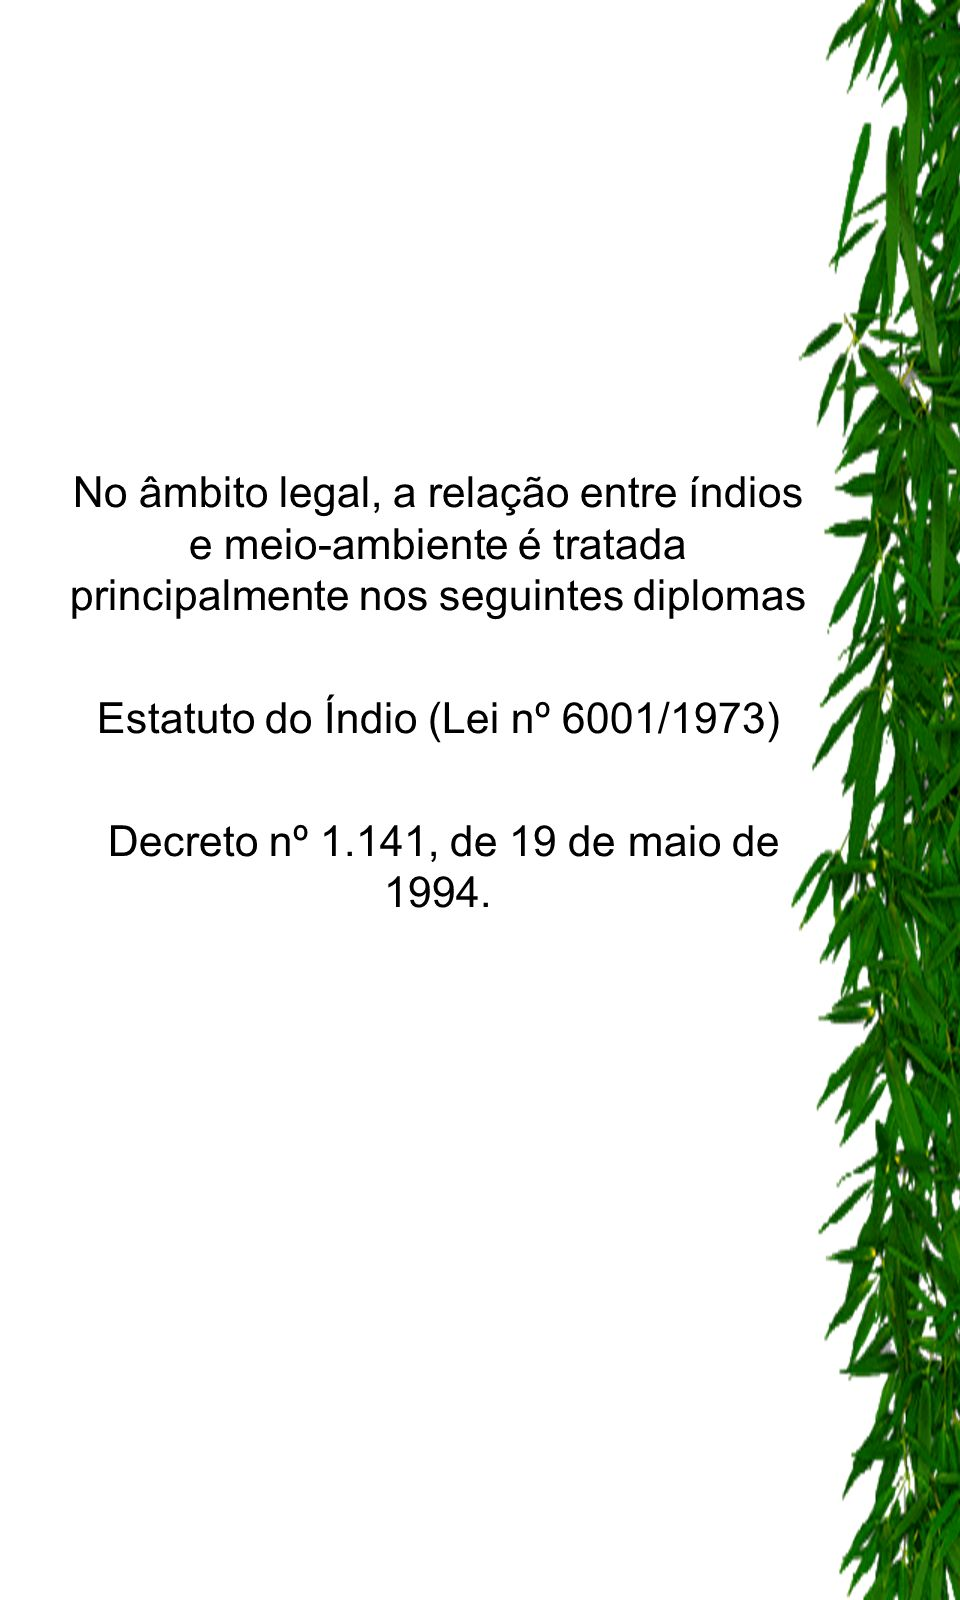 Estatuto do Índio (Lei nº 6001/1973)